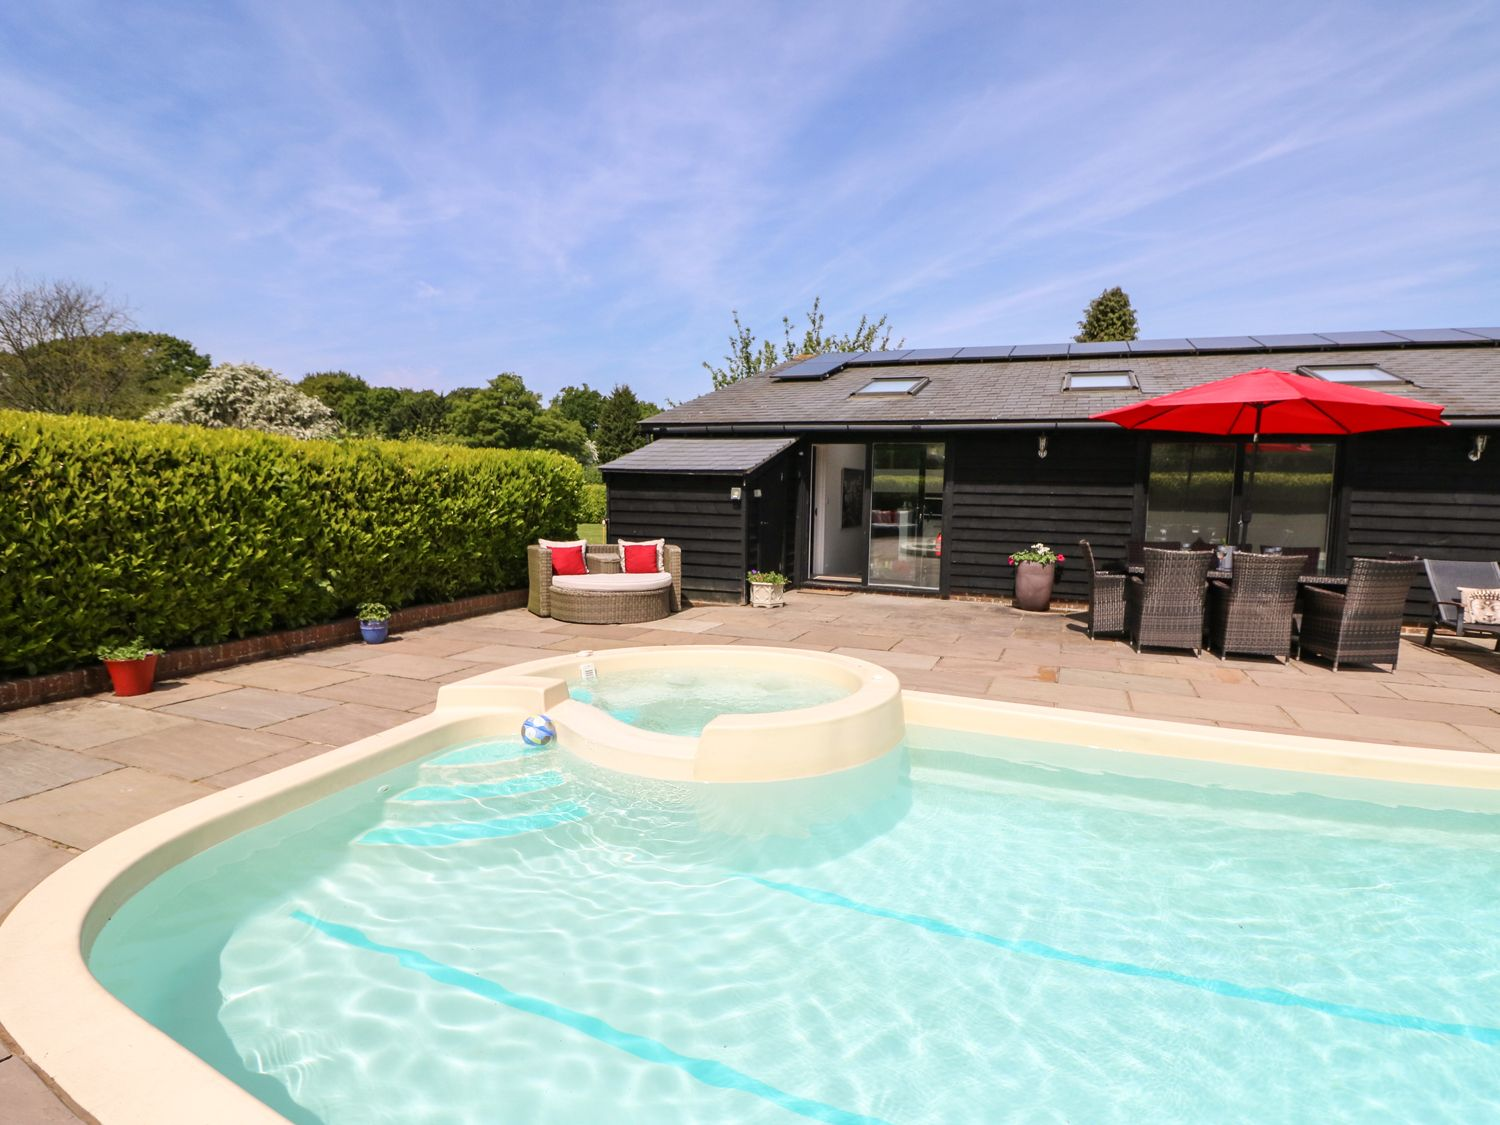 Holiday homes with a pool  in South Coast